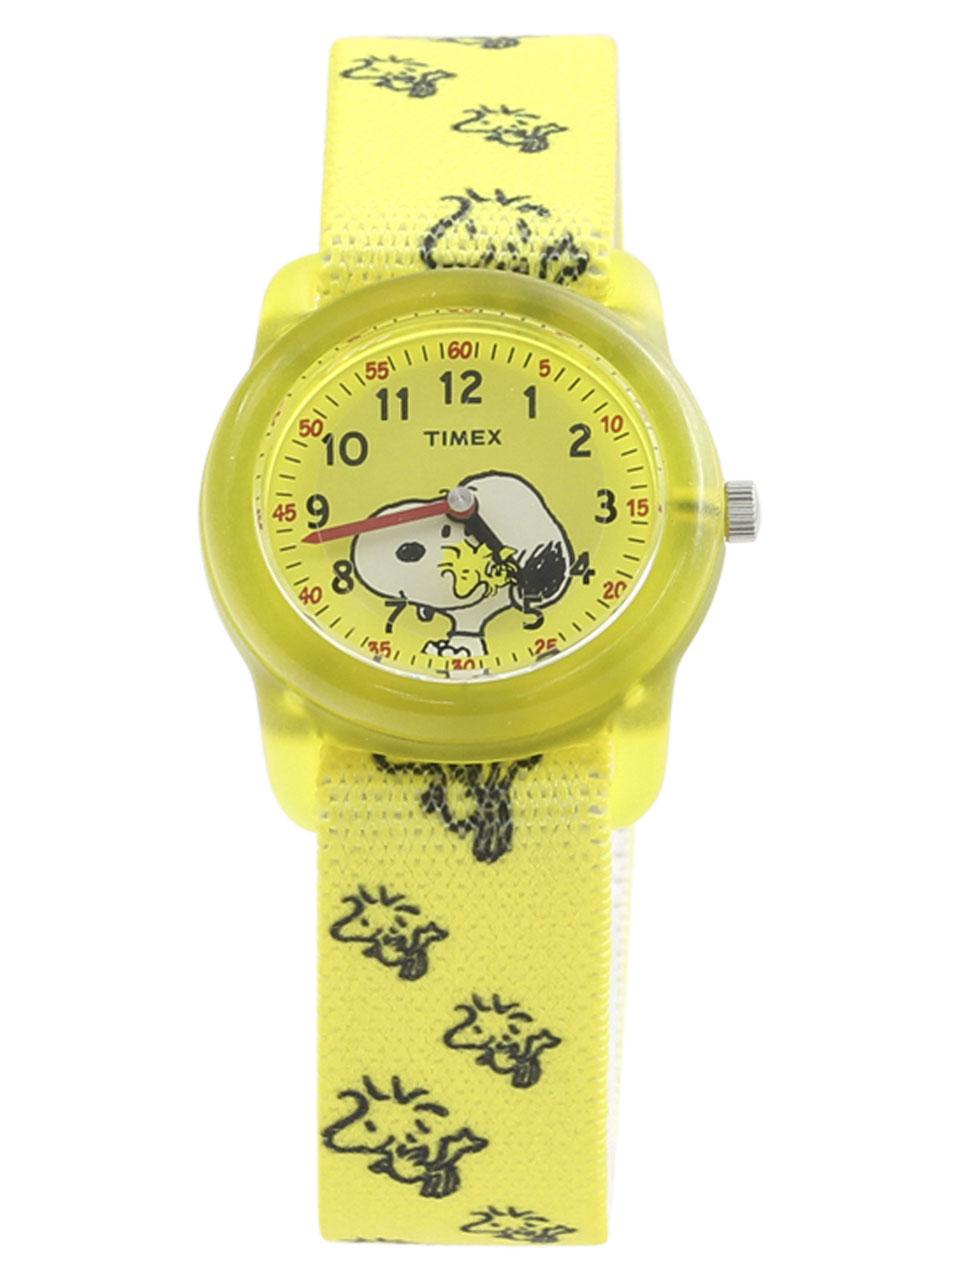 Timex TW2R41500 Time Machines Peanuts Collection Snoopy Yellow Analog Watch